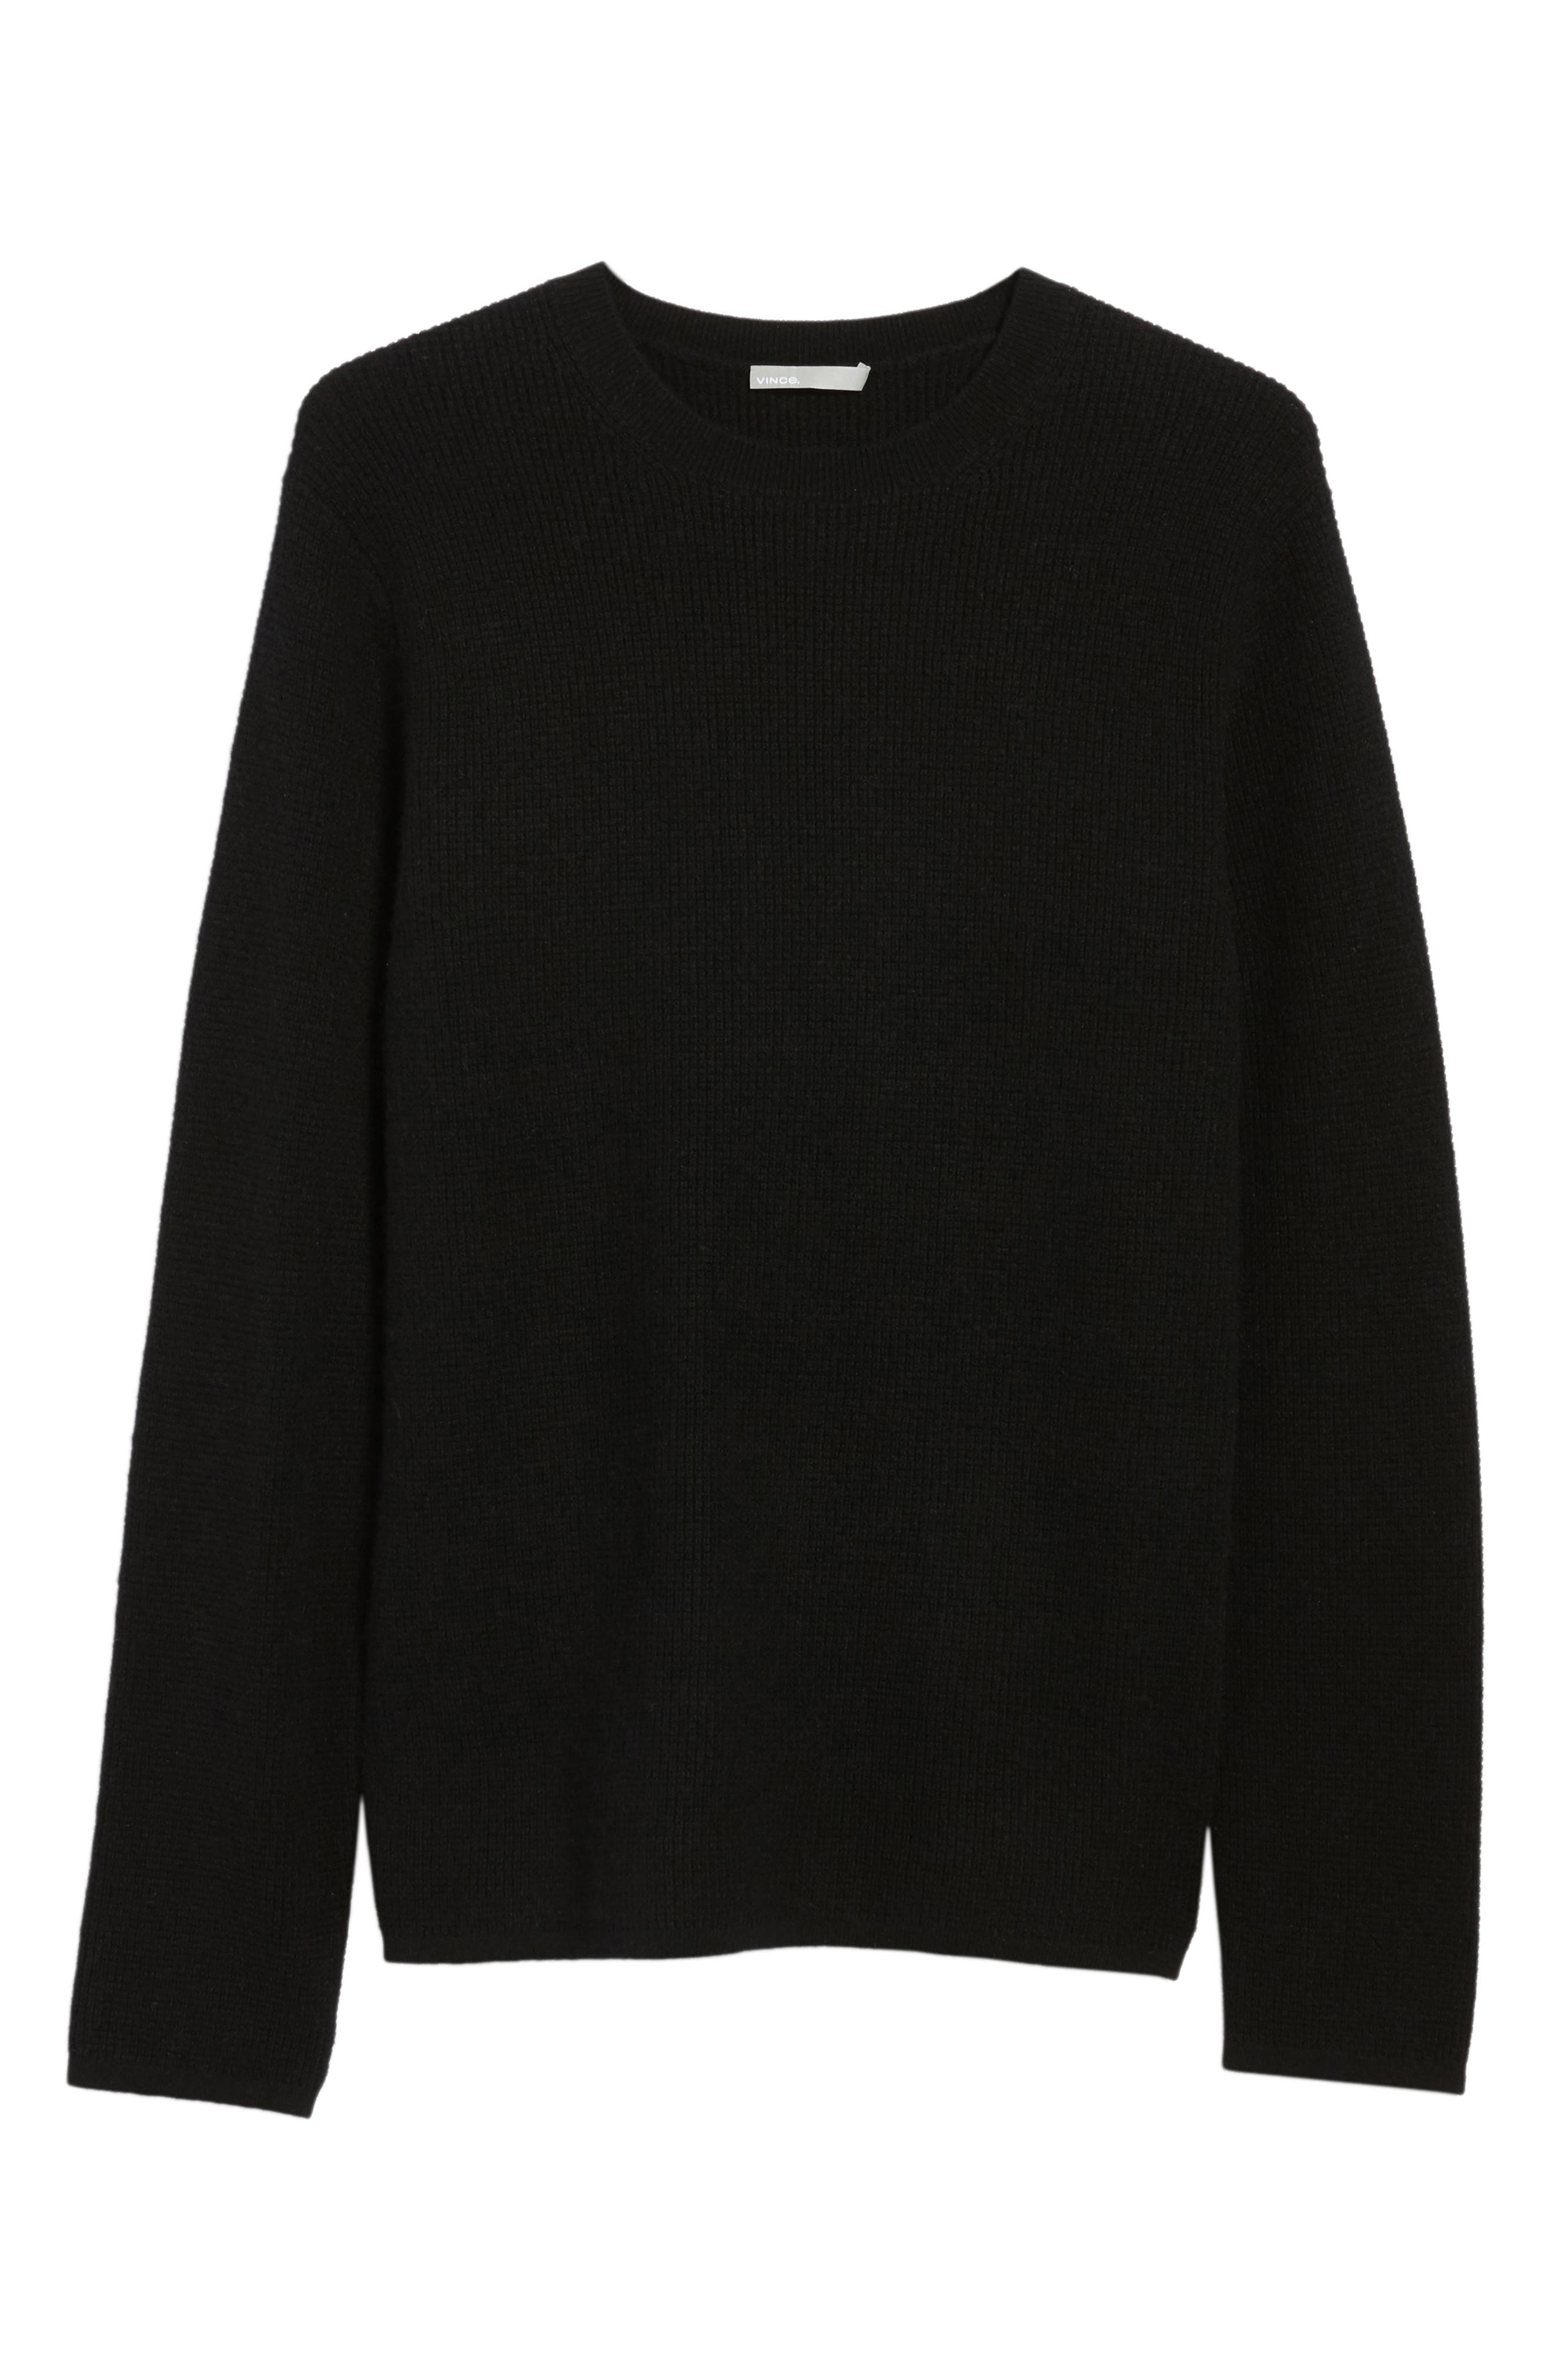 Thermal Wool & Cashmere Sweater,                             Alternate thumbnail 6, color,                             Black